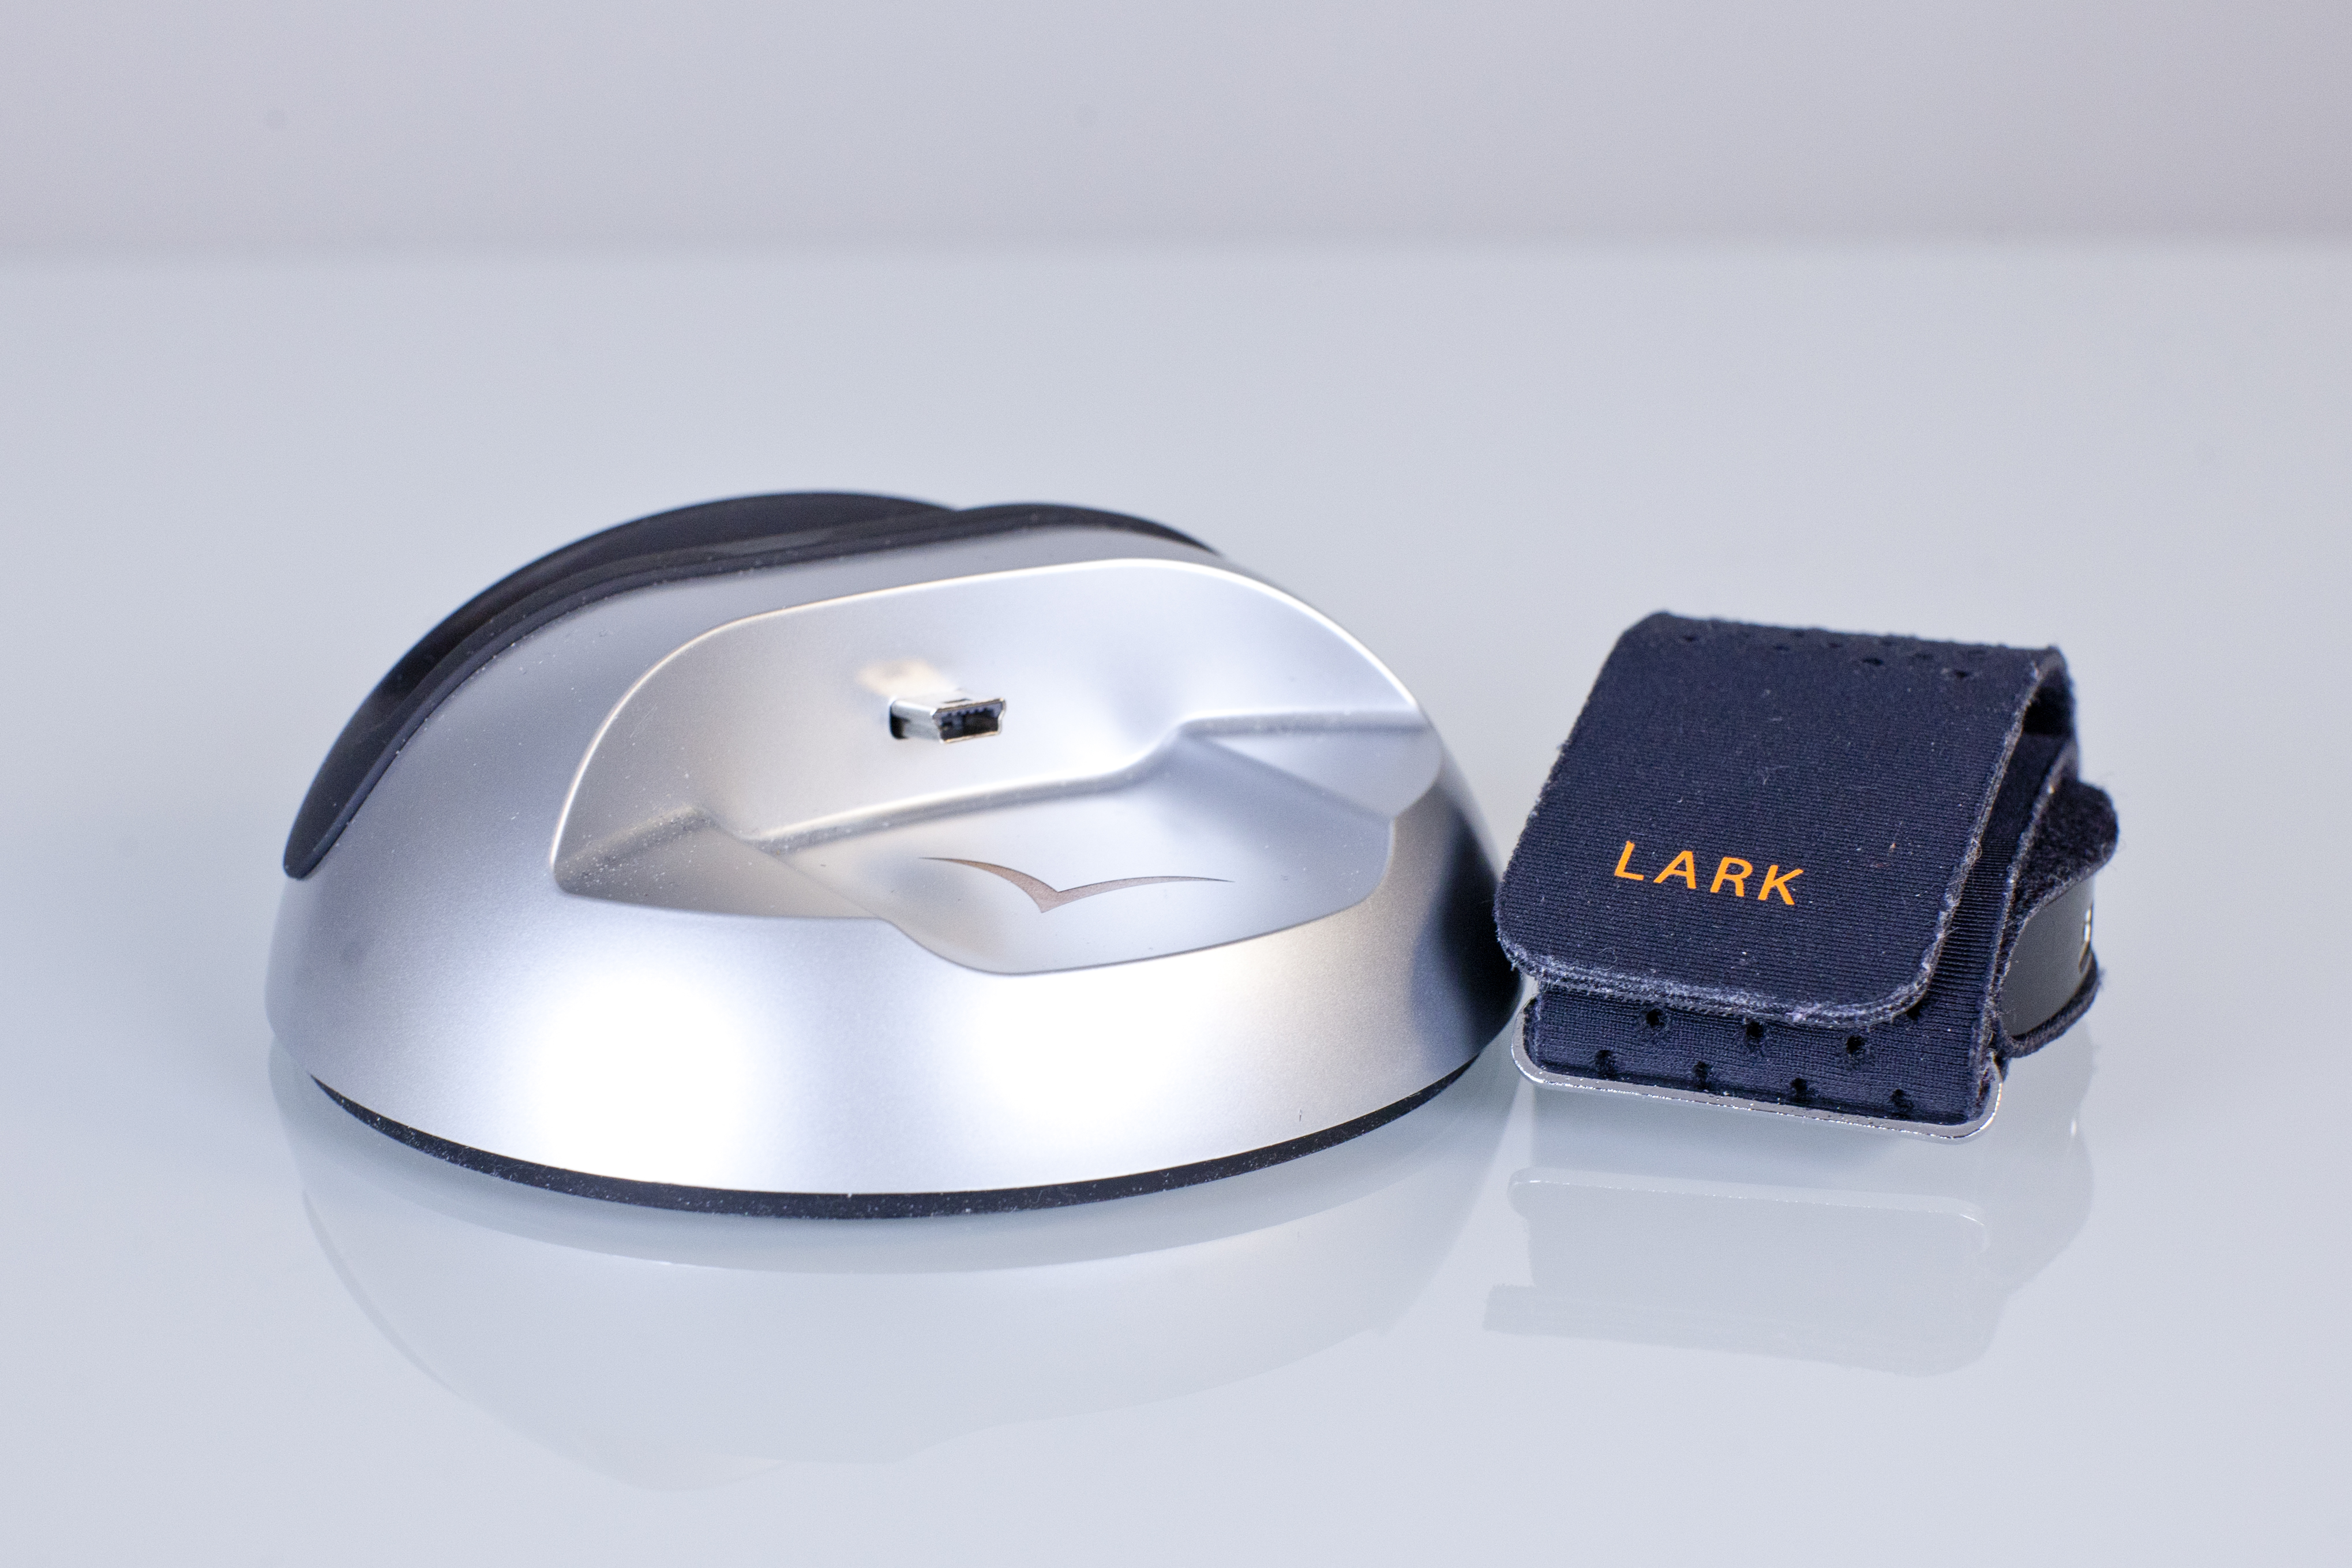 Lark Silent Alarm Review and Dock